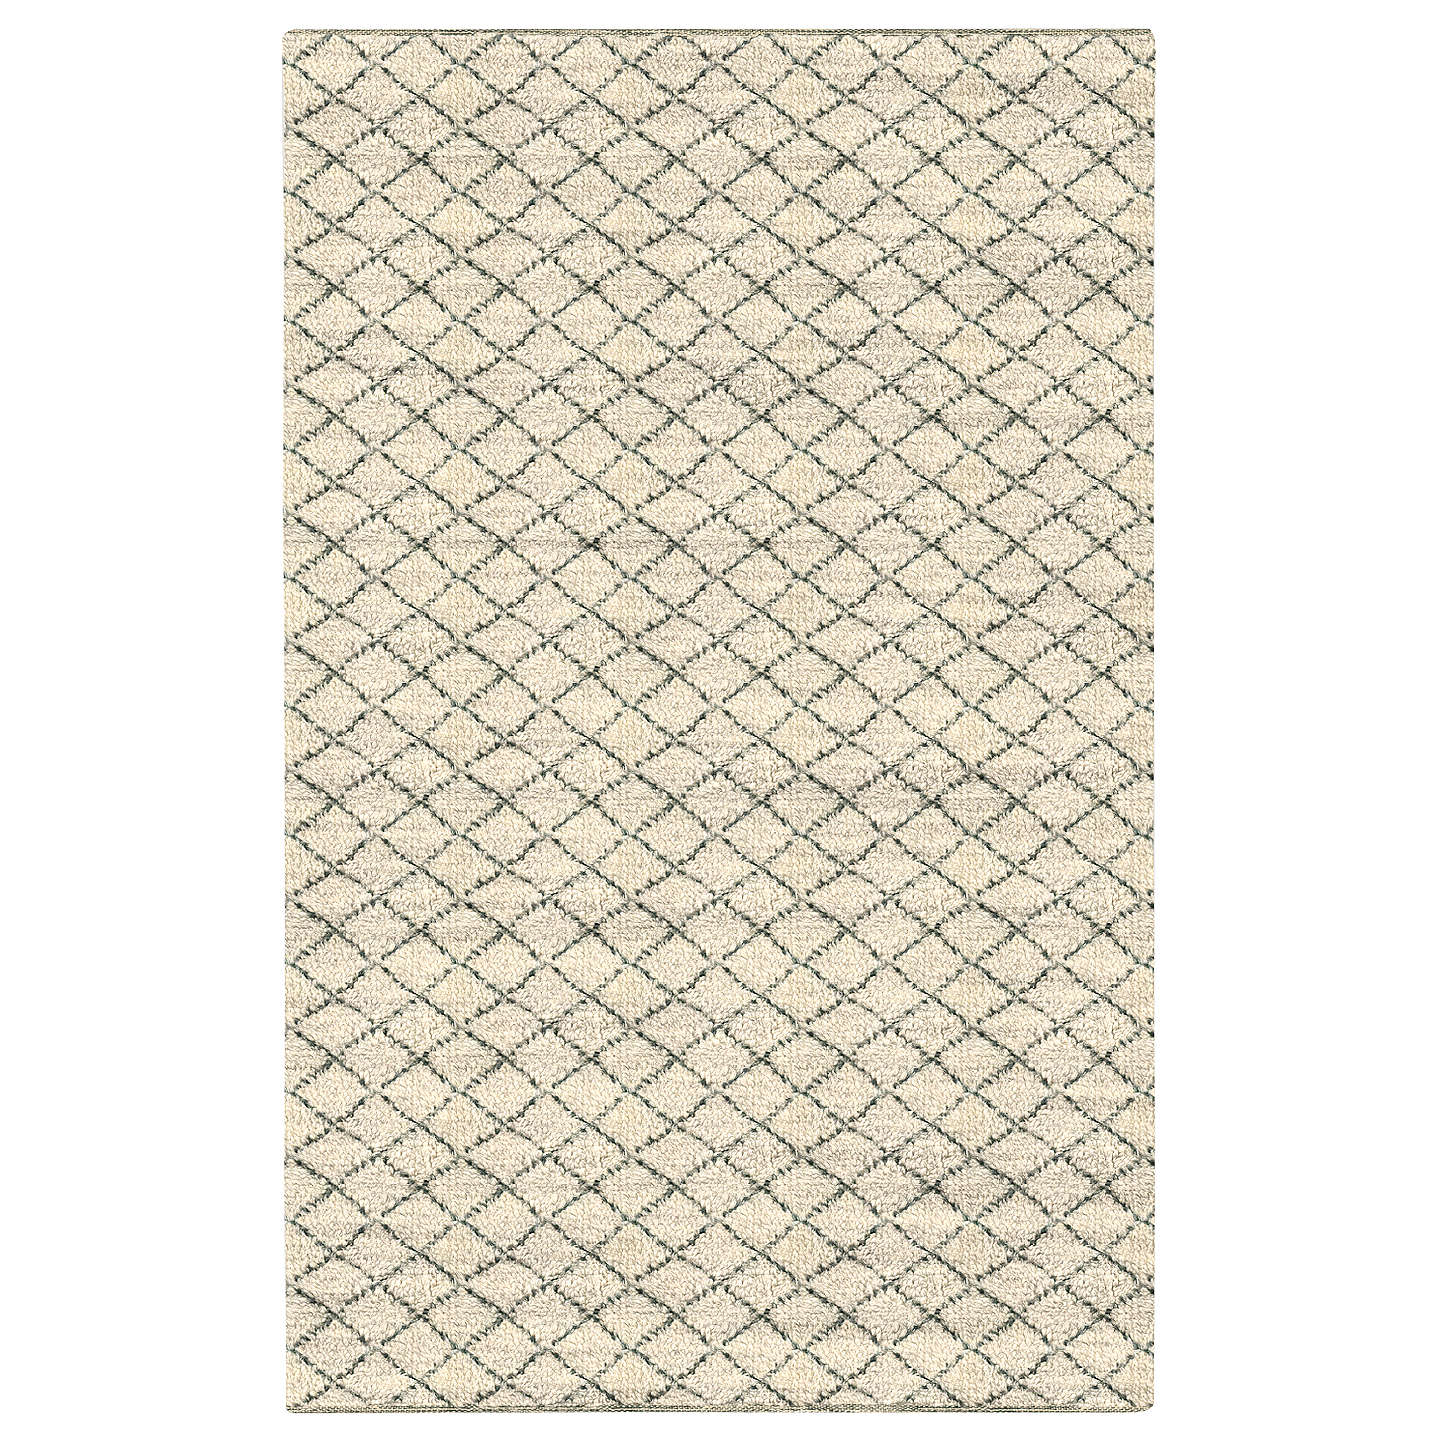 rug rugs area trellis floral p